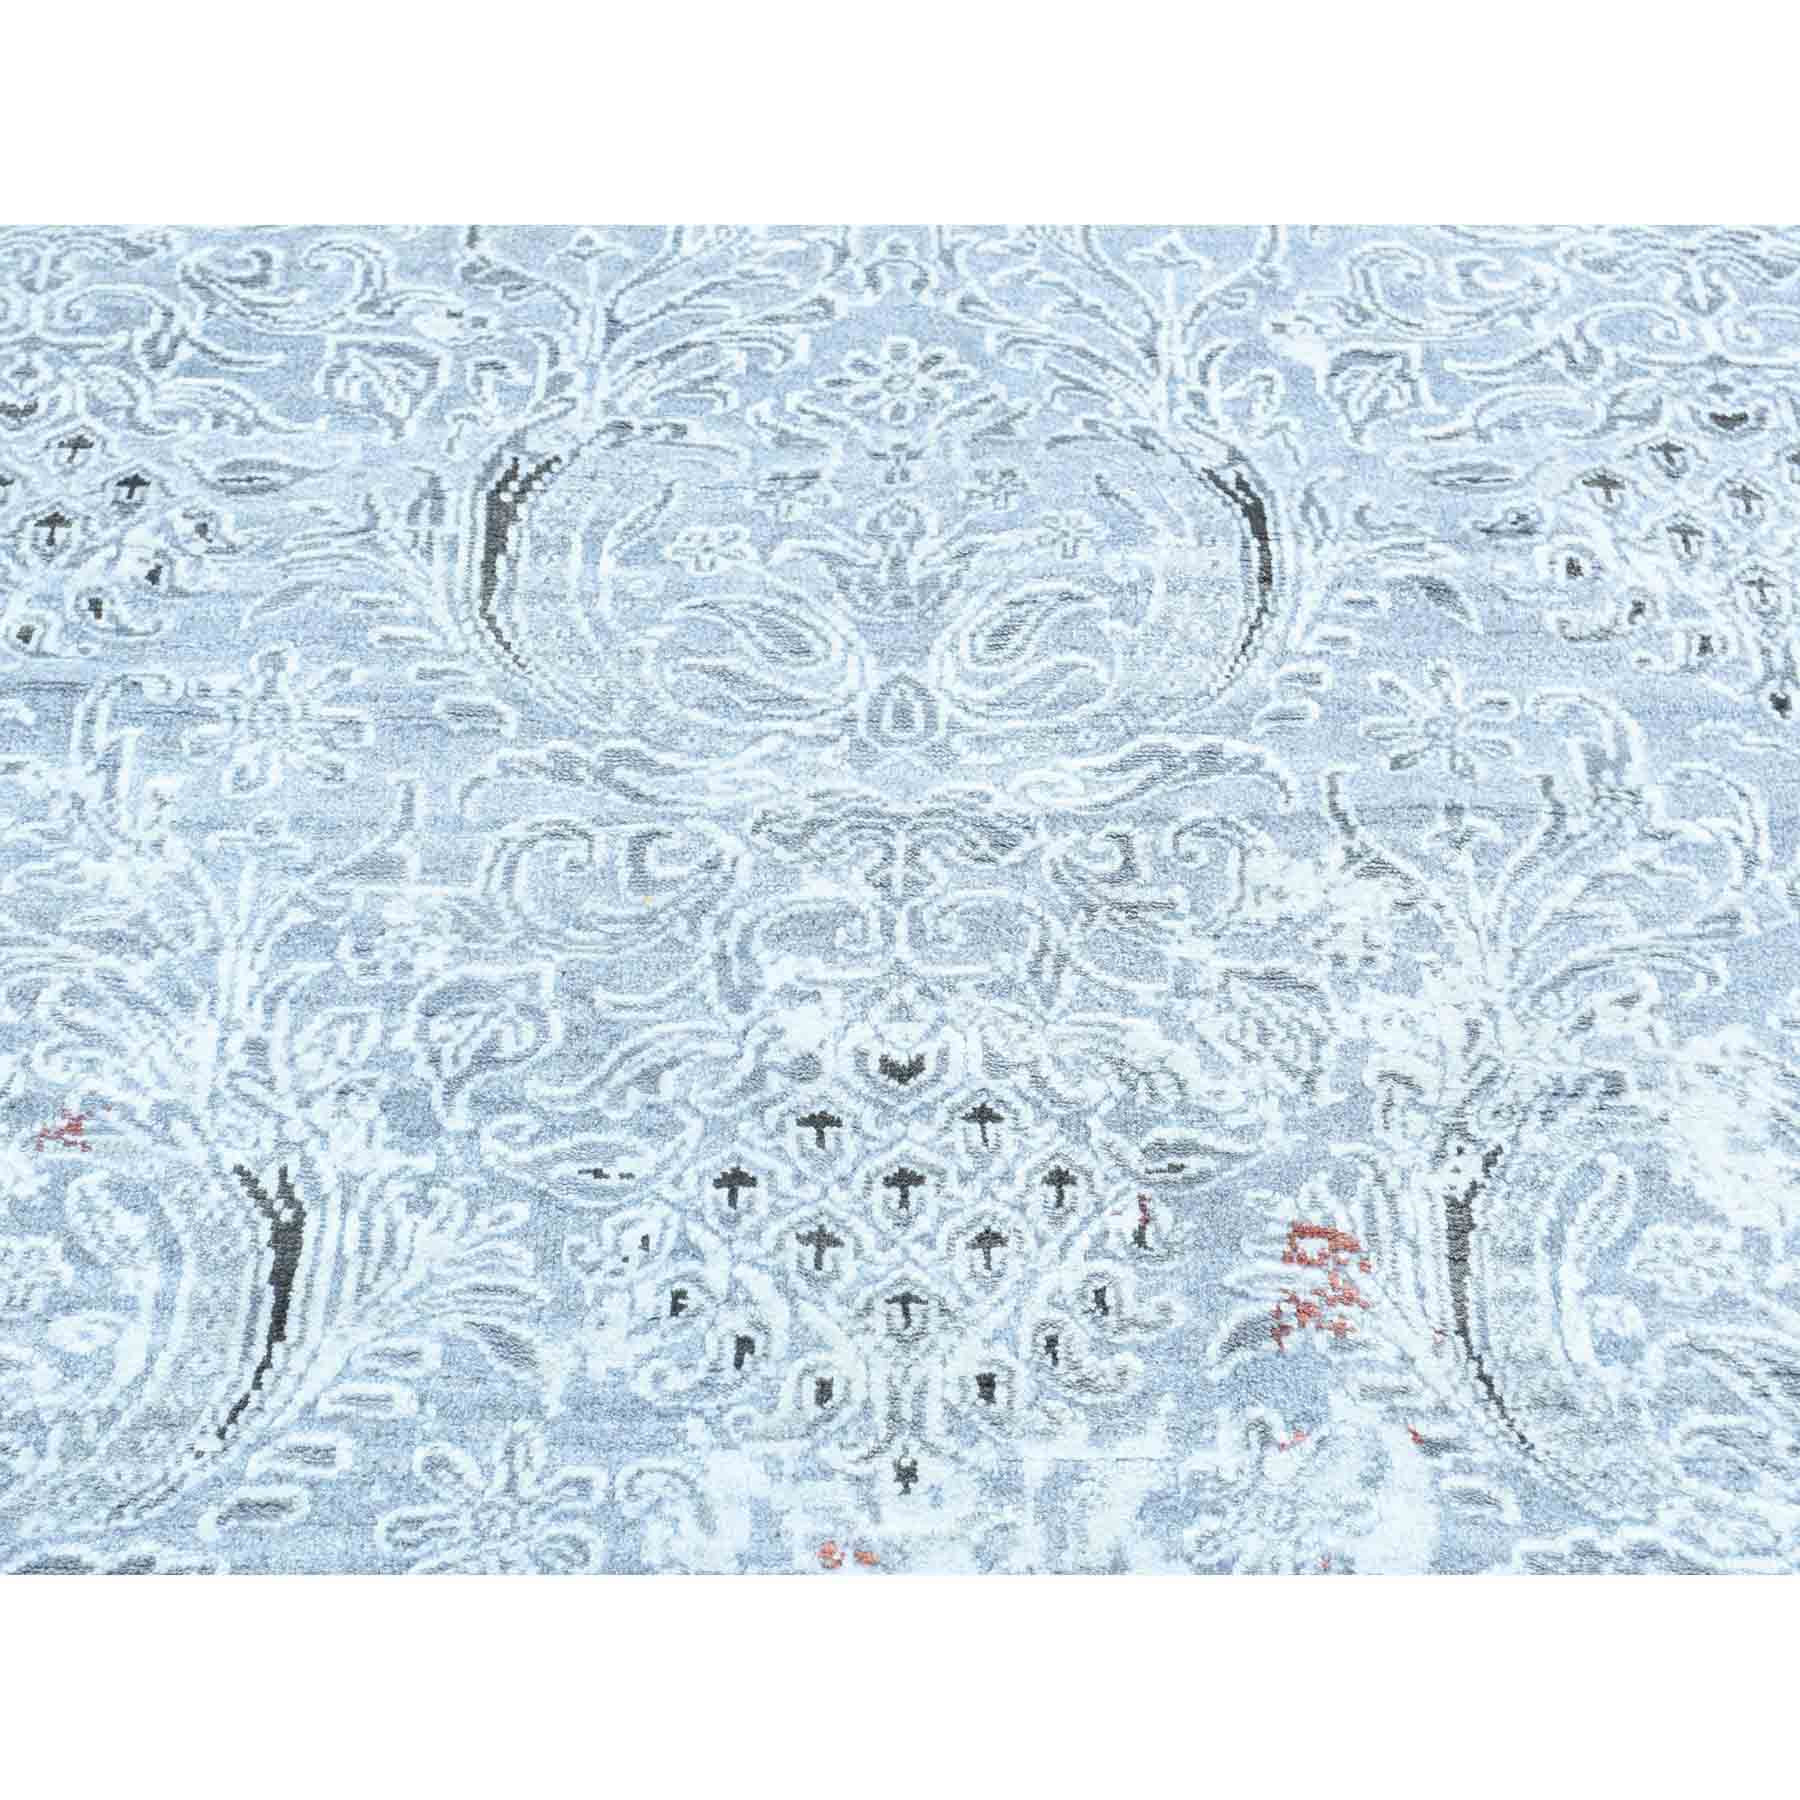 Modern-Contemporary-Hand-Knotted-Rug-160880